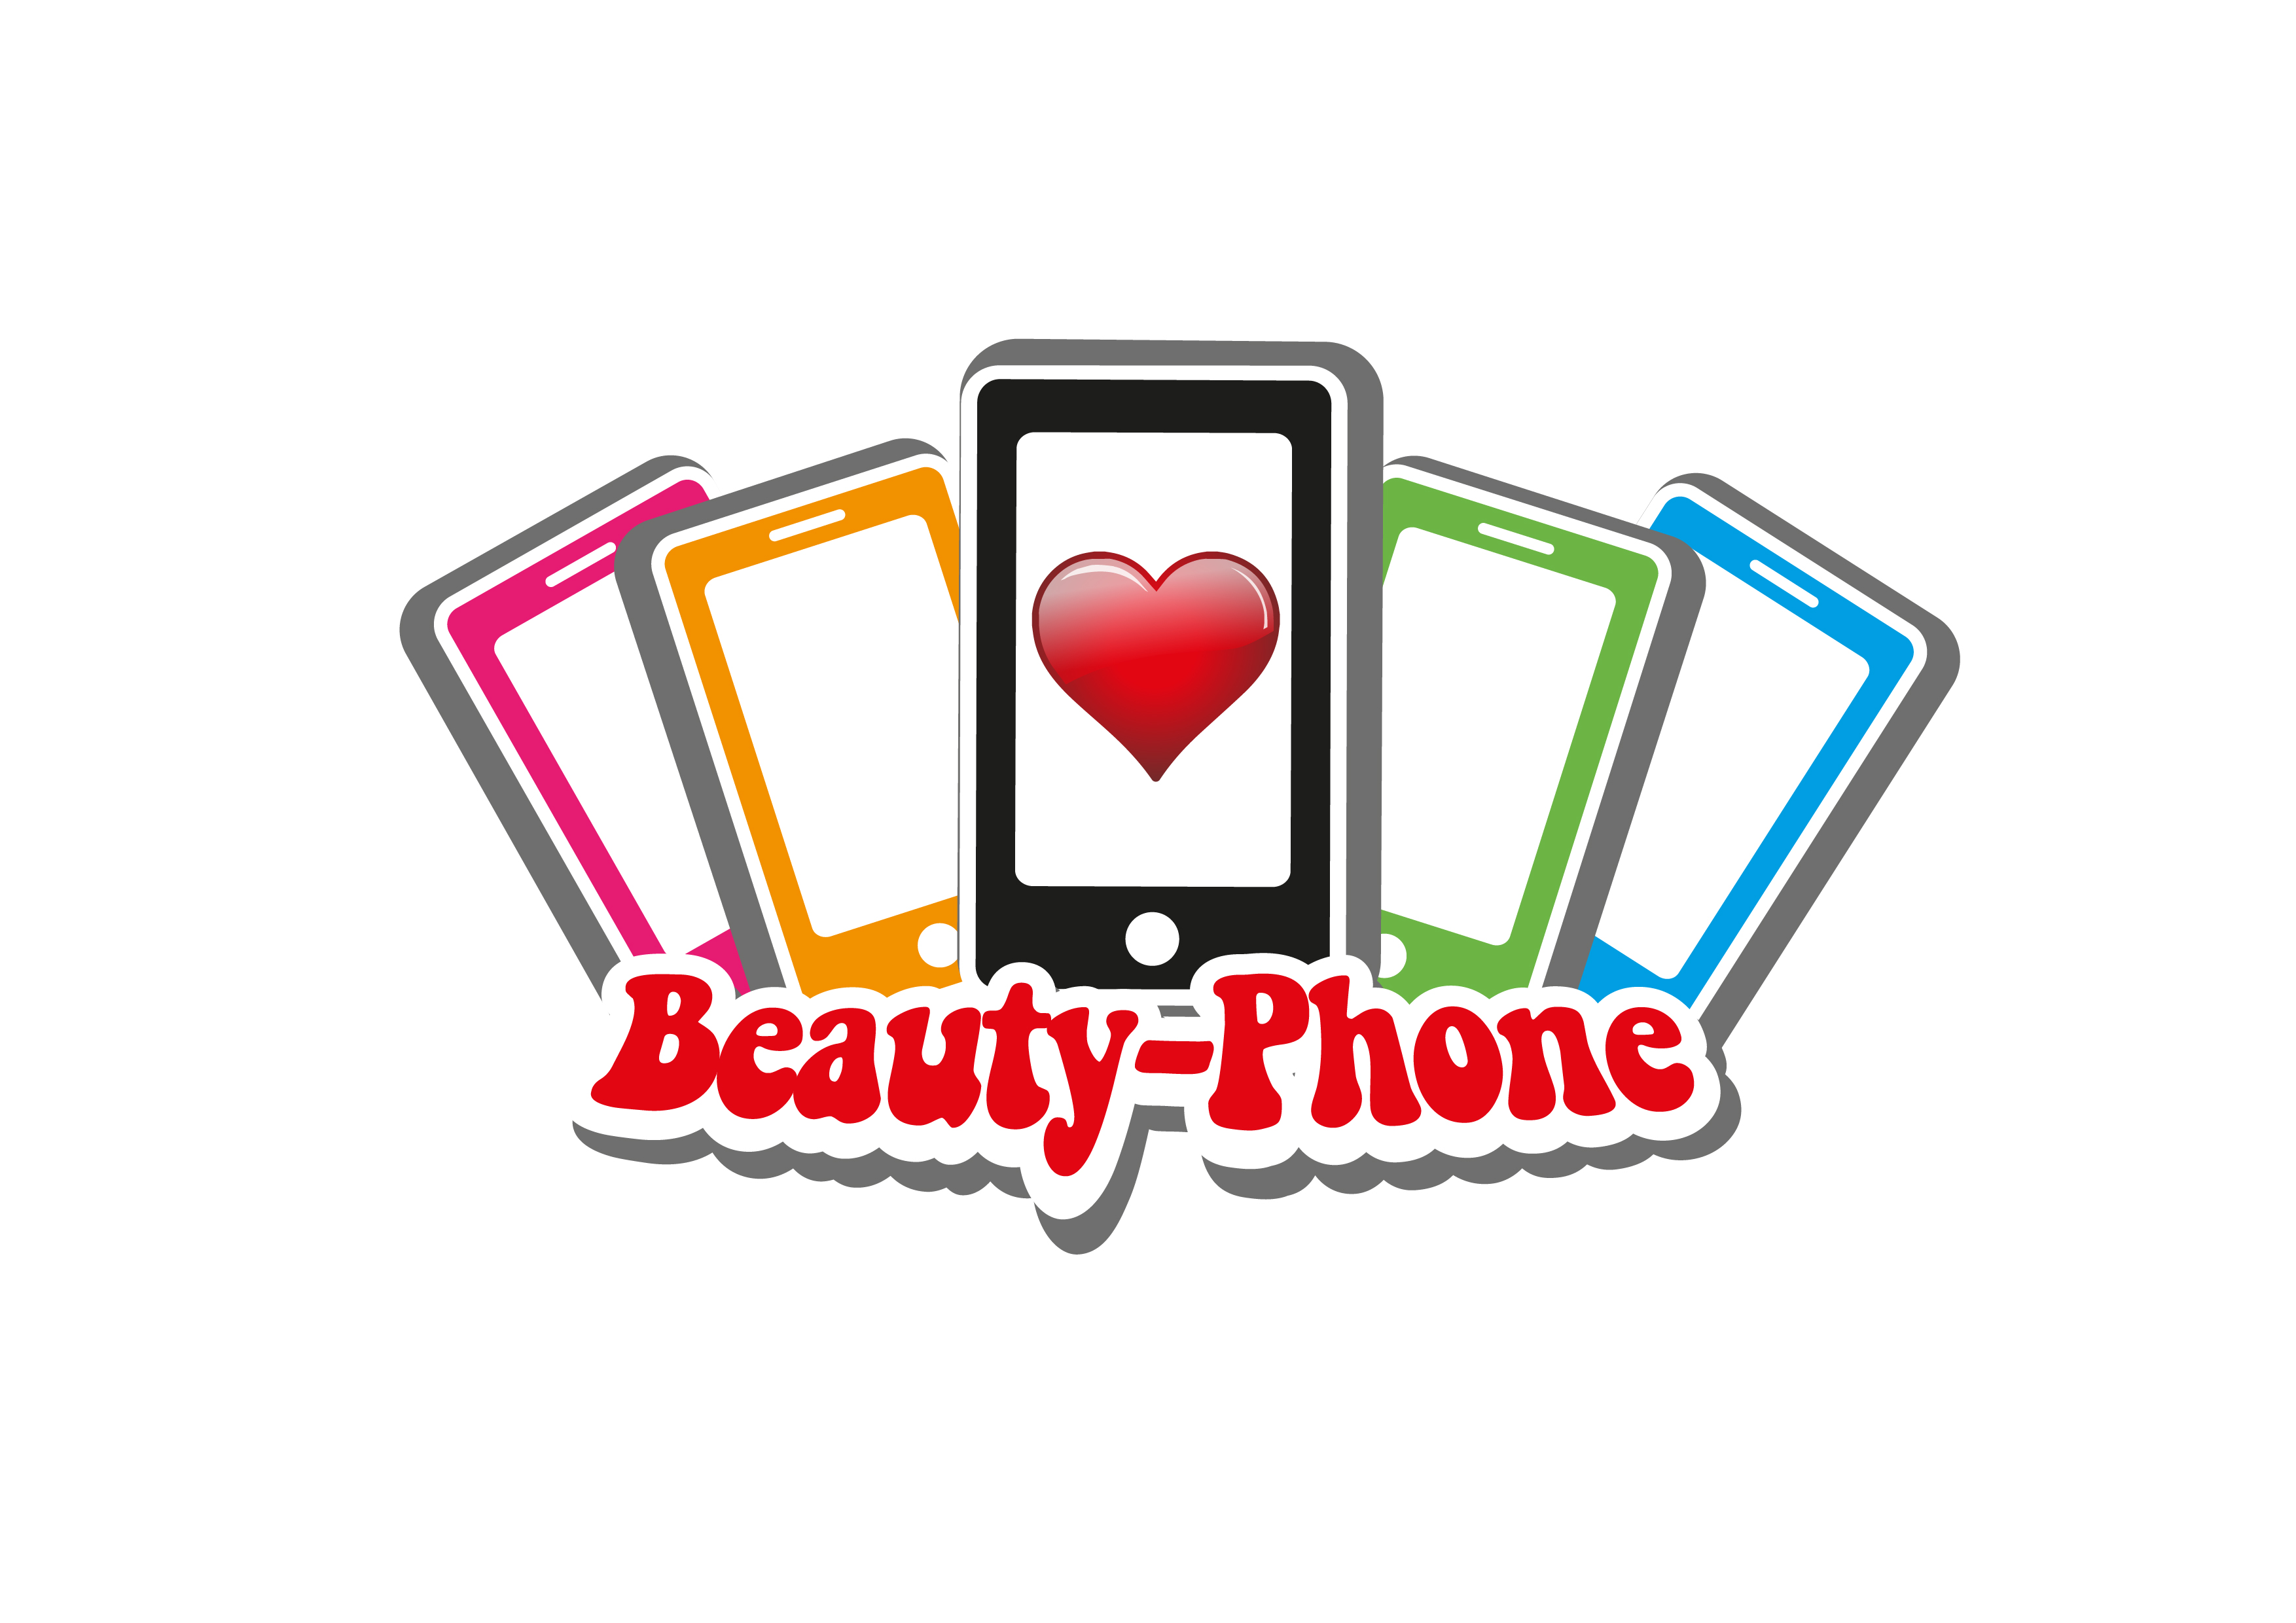 BEAUTY-PHONE